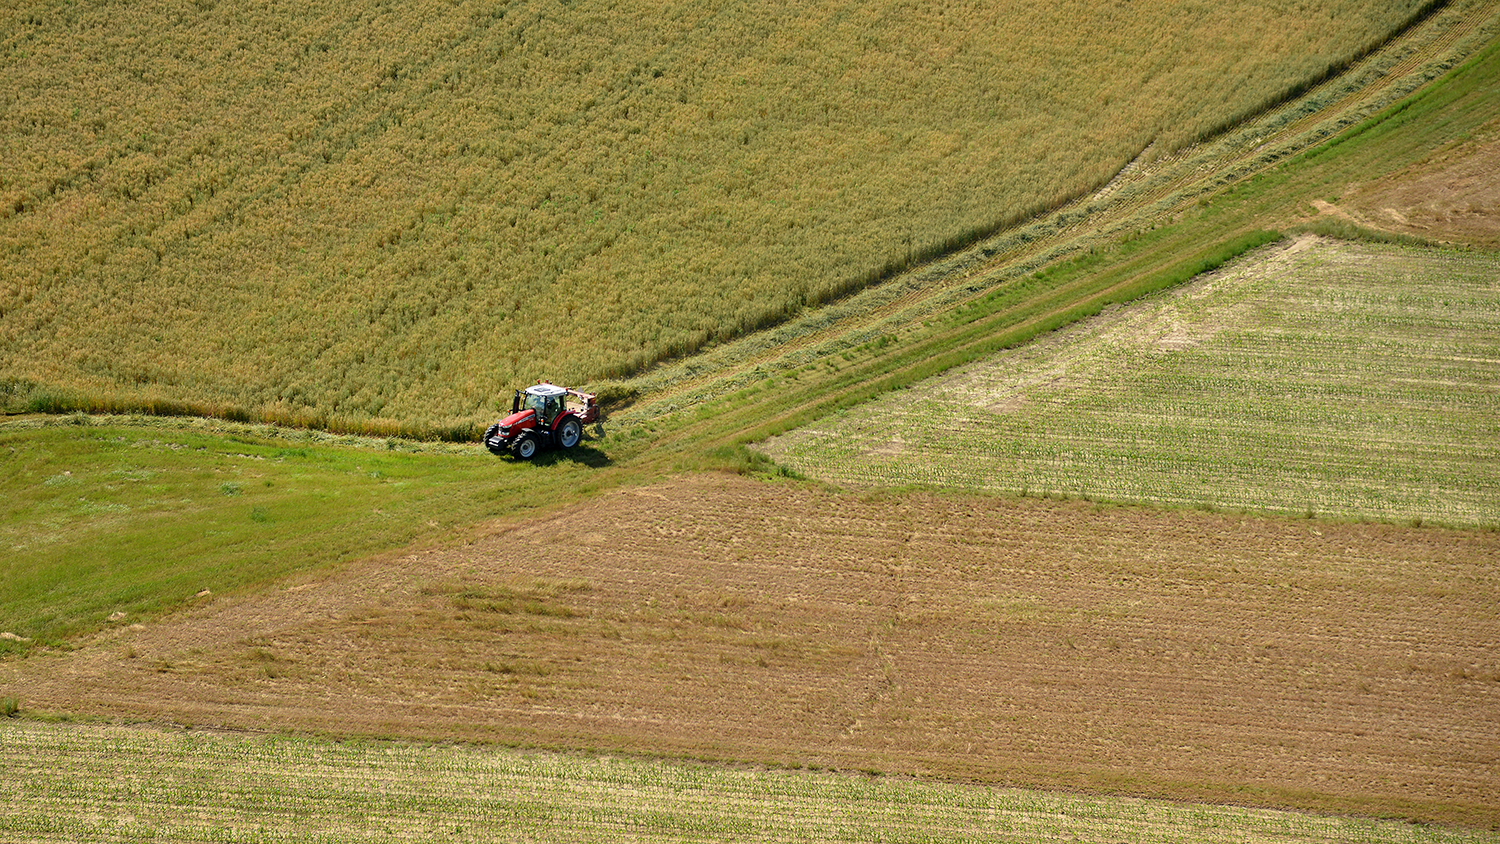 an aerial shot of a tractor in a large field